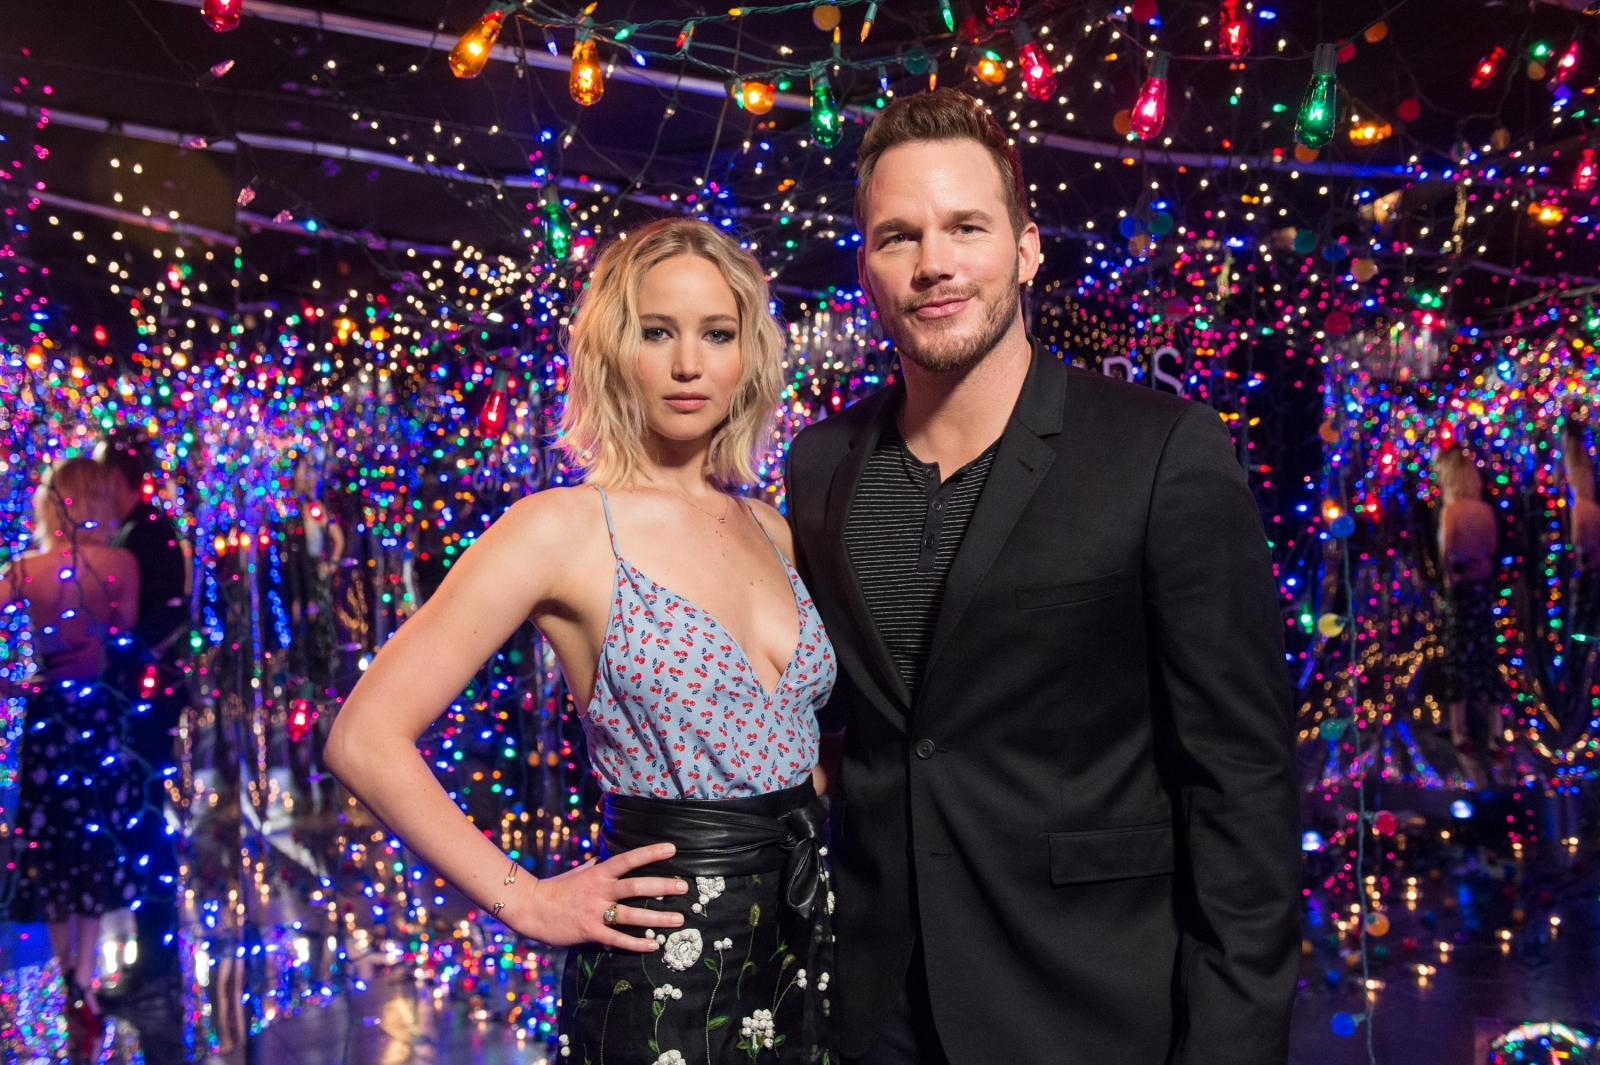 Jennifer Lawrence says she never had an affair with Chris Pratt